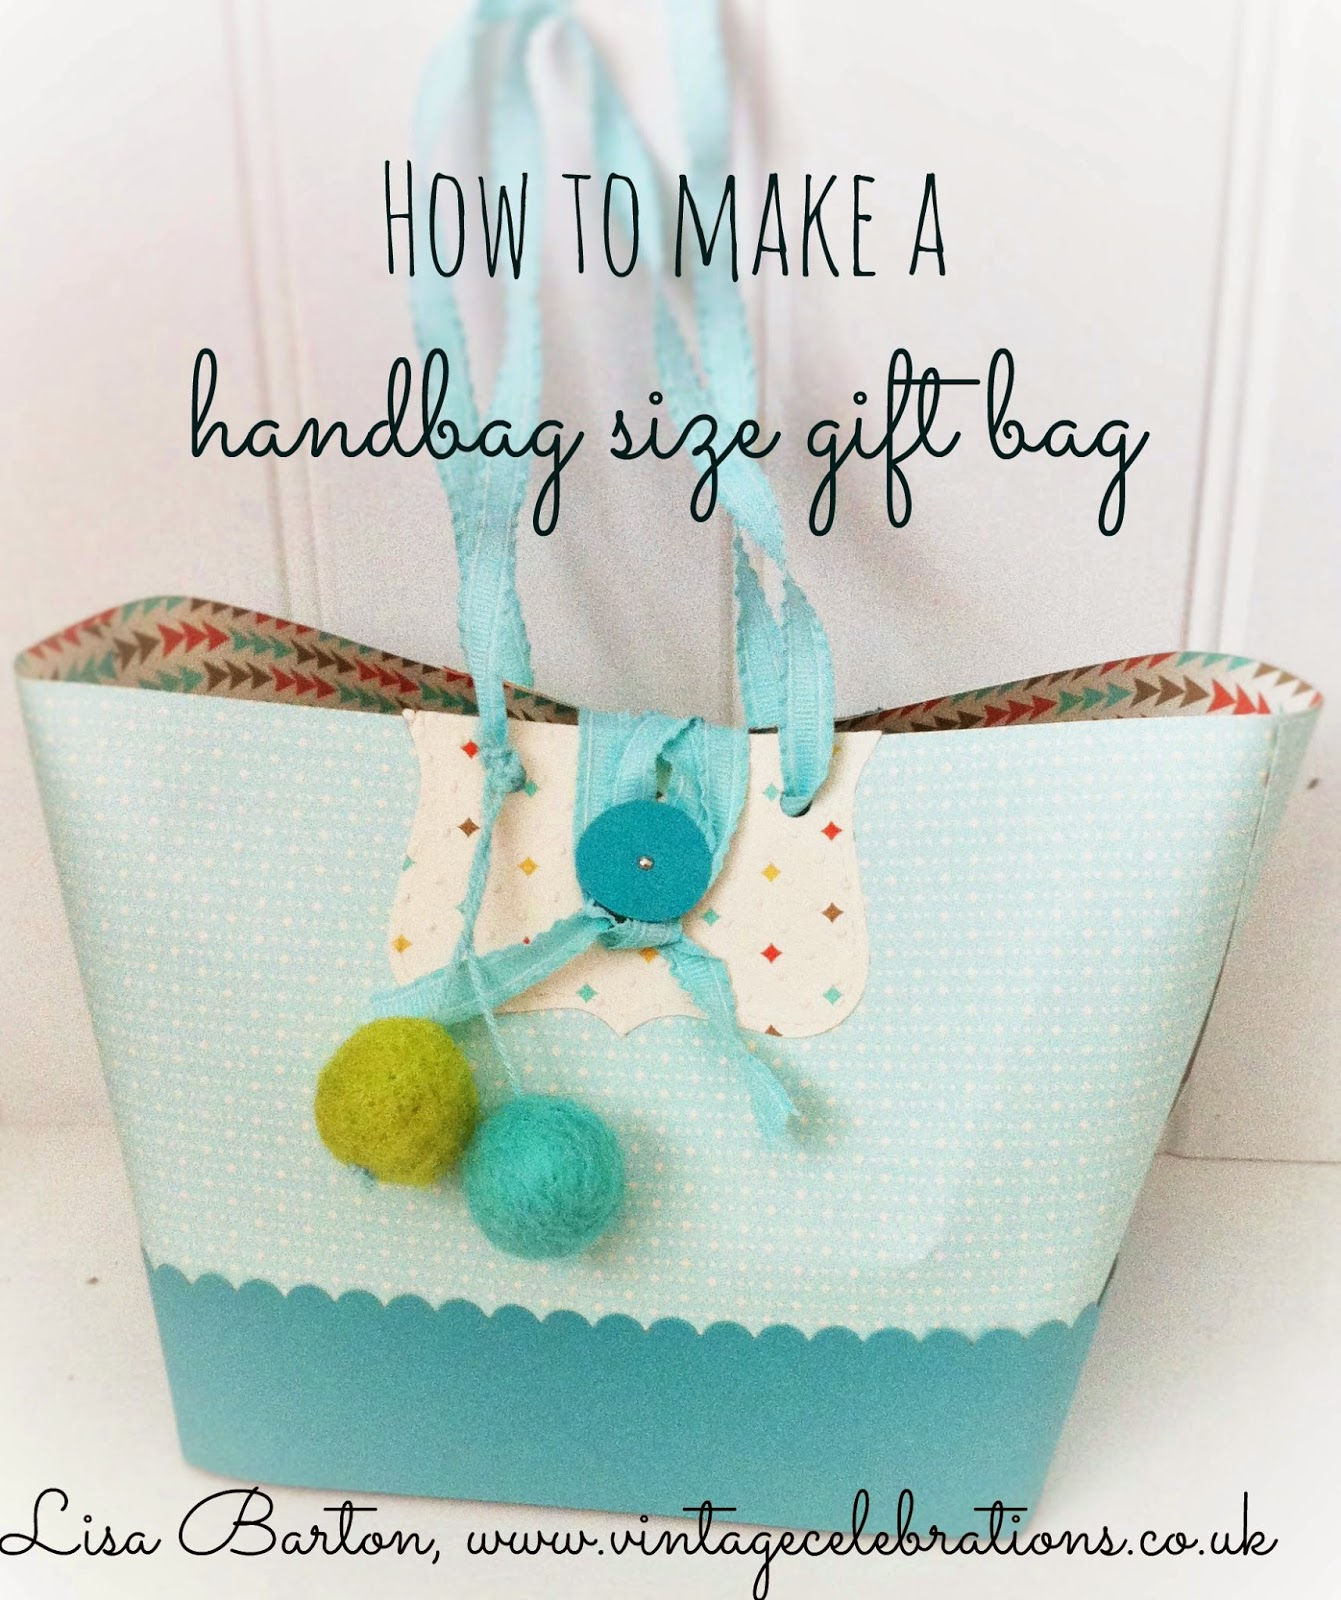 Tips techniques on how to sell your handmade crafts easily how to make a handbag size paper gift bag video tutorial by lisa barton vintage jeuxipadfo Choice Image